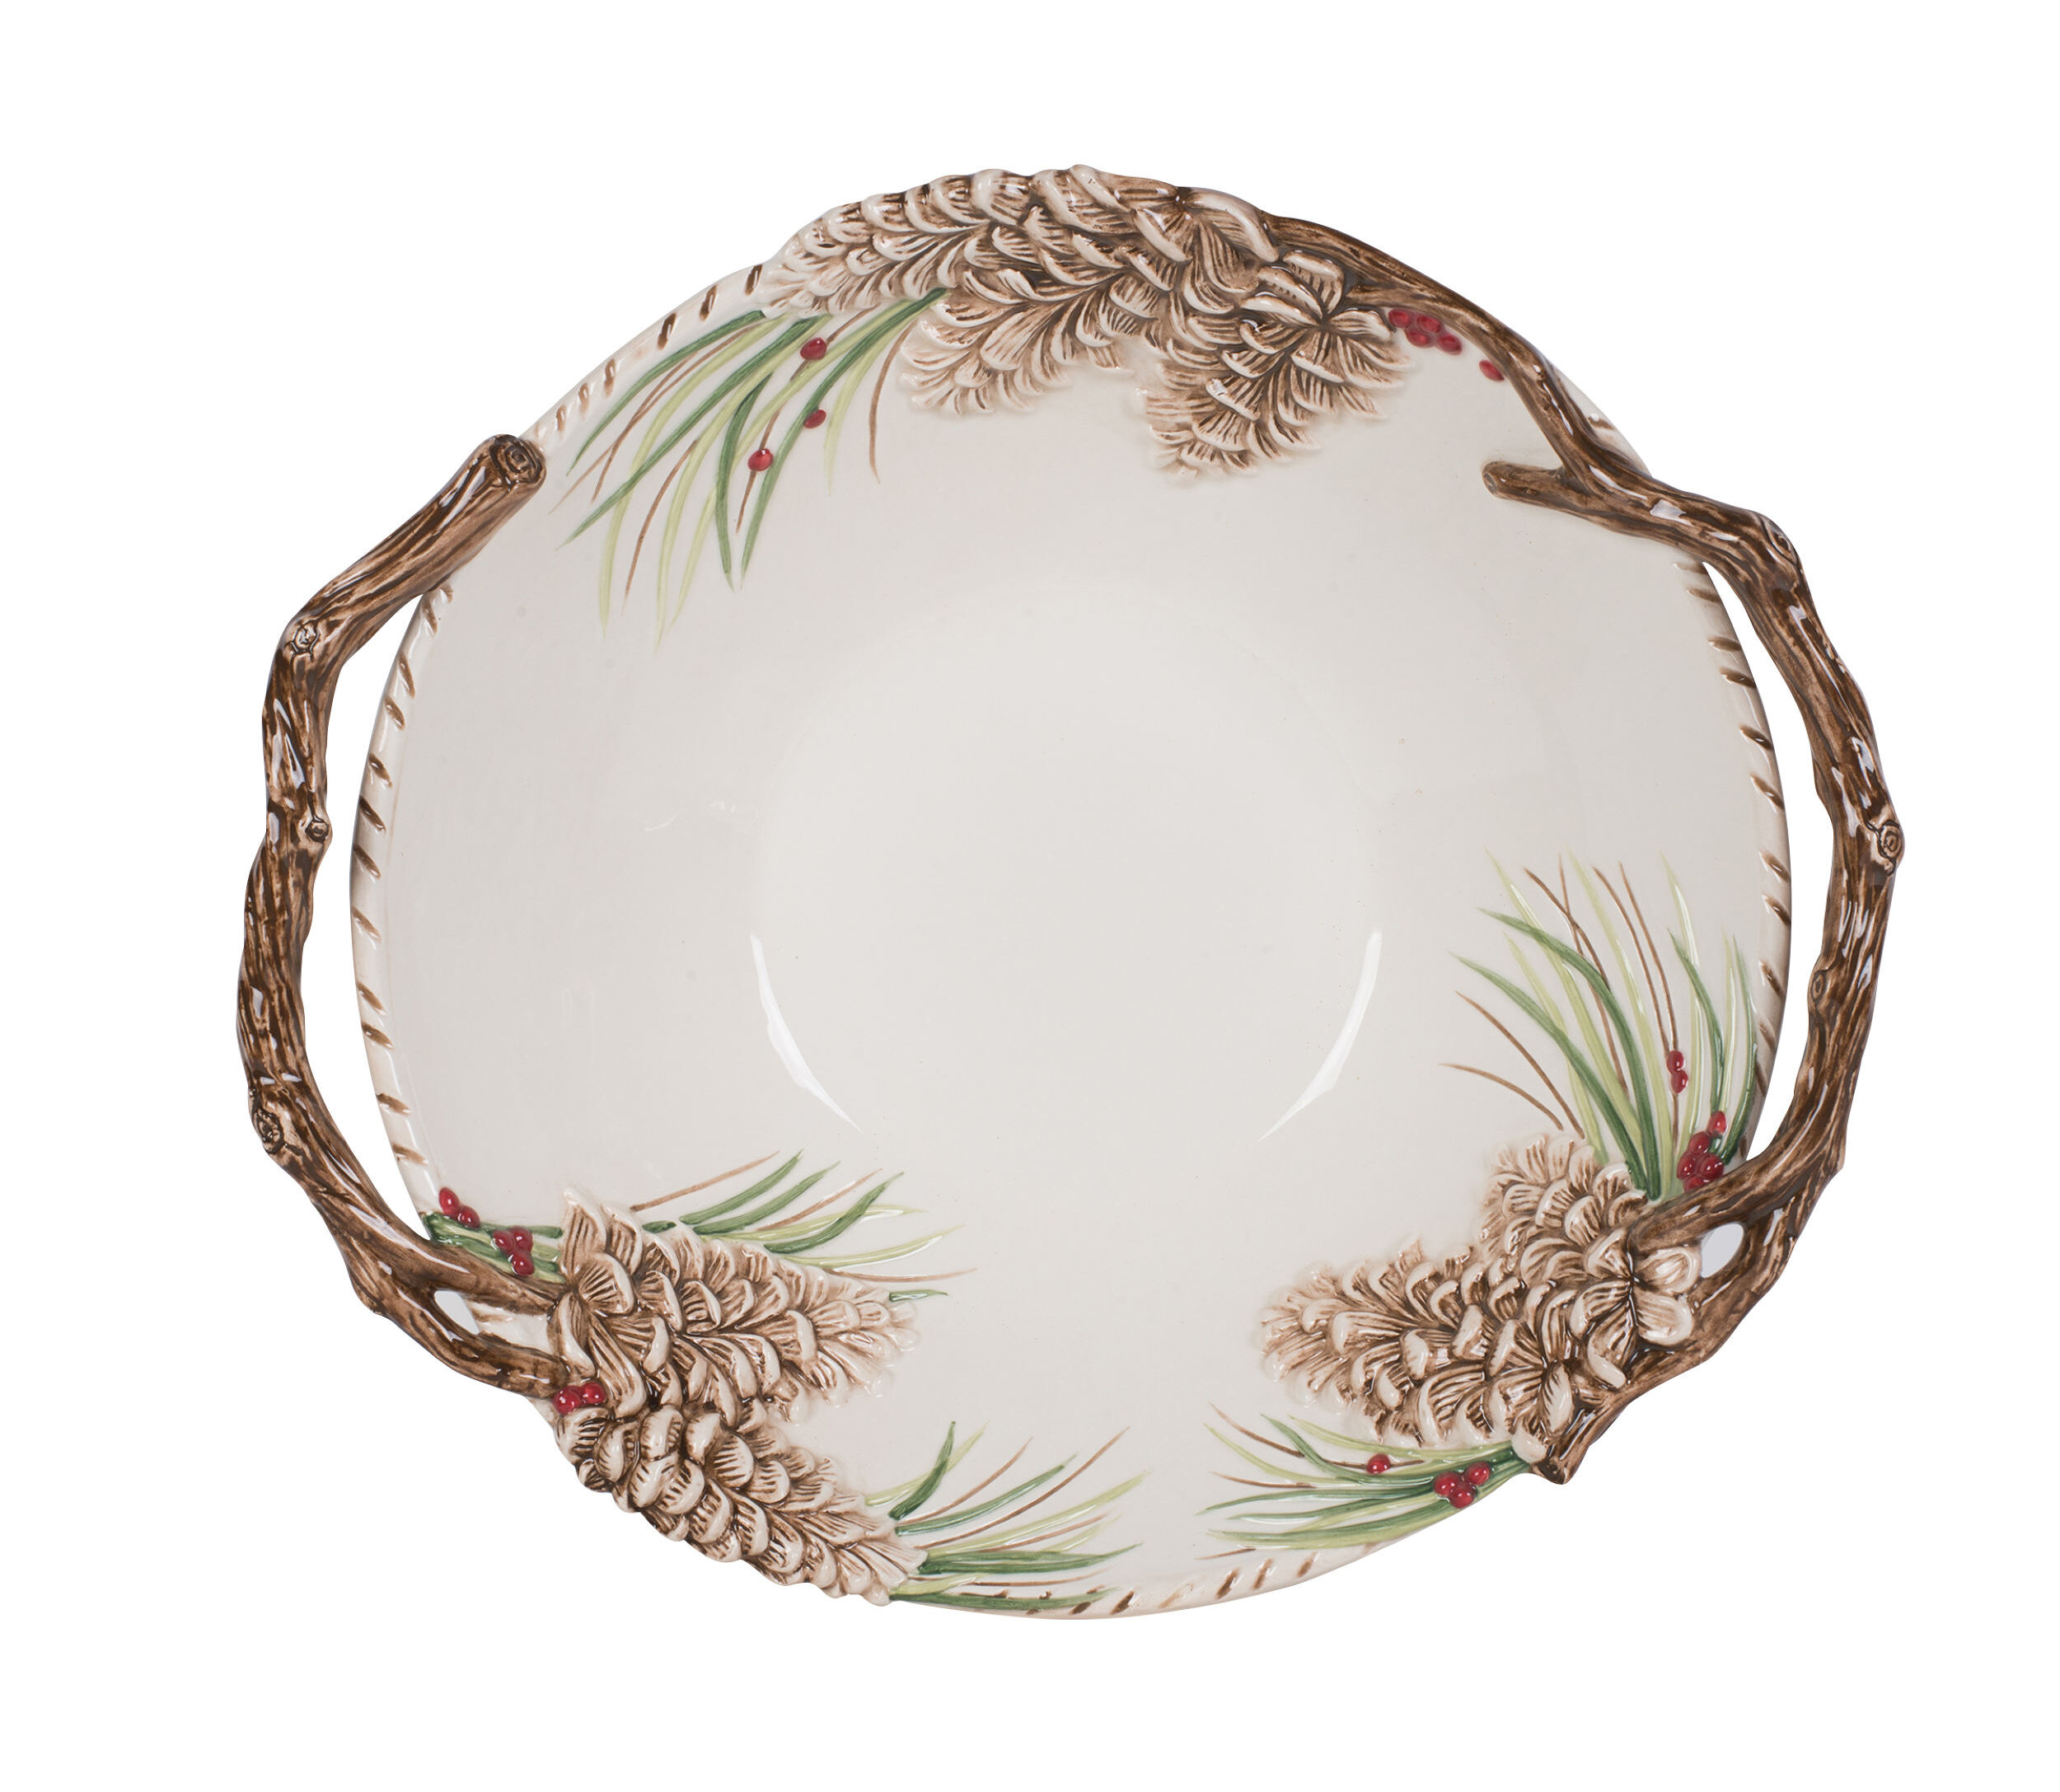 Trays Christmas Serving Dishes Platters You Ll Love In 2021 Wayfair